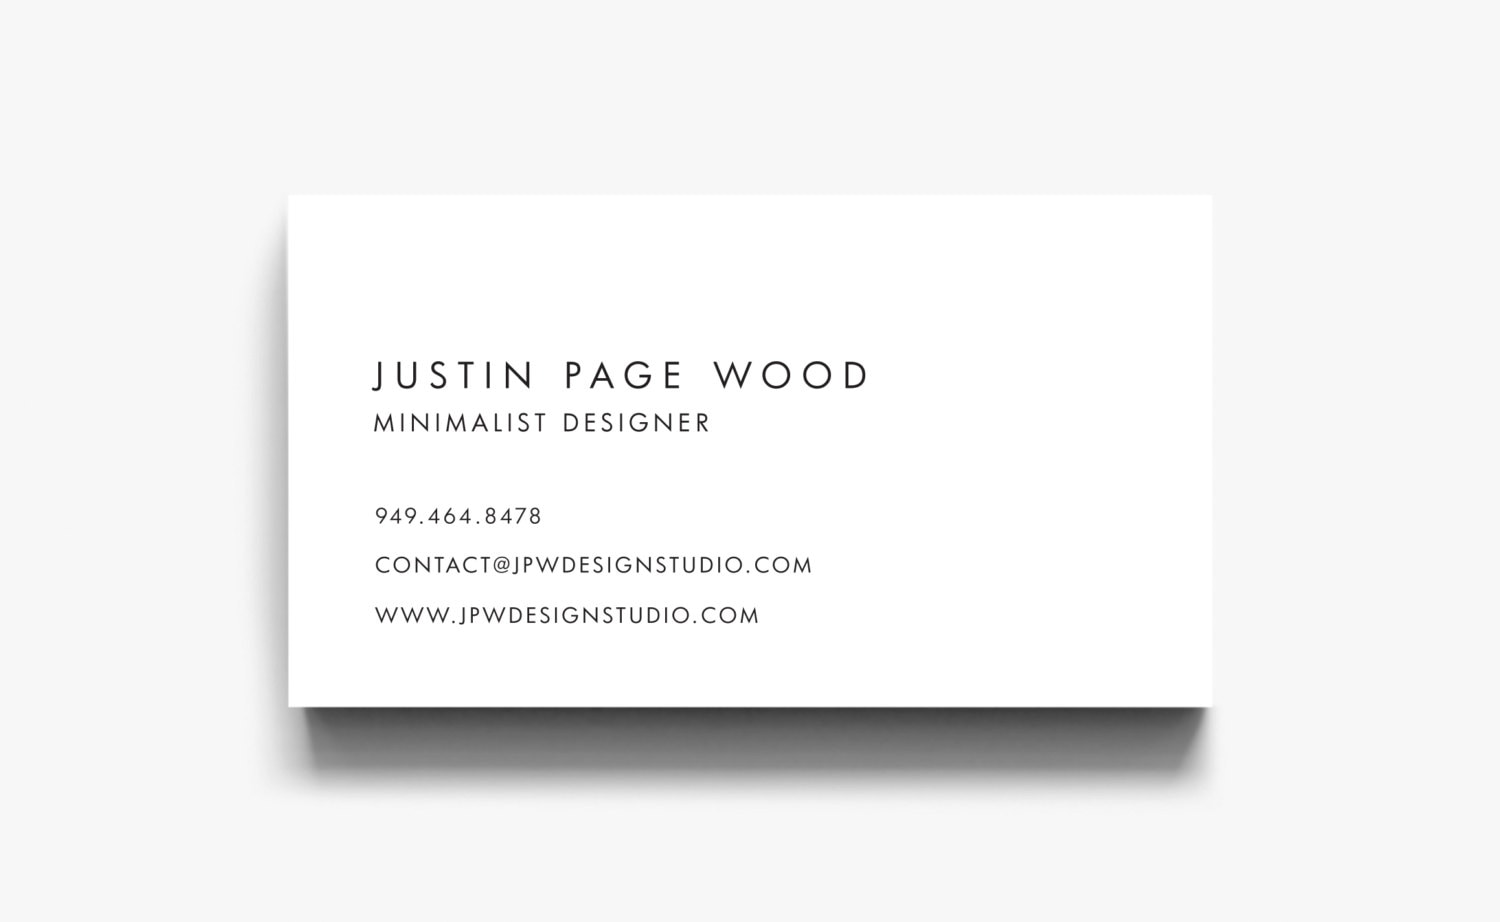 Business Card Design Business Card Template Calling Cards